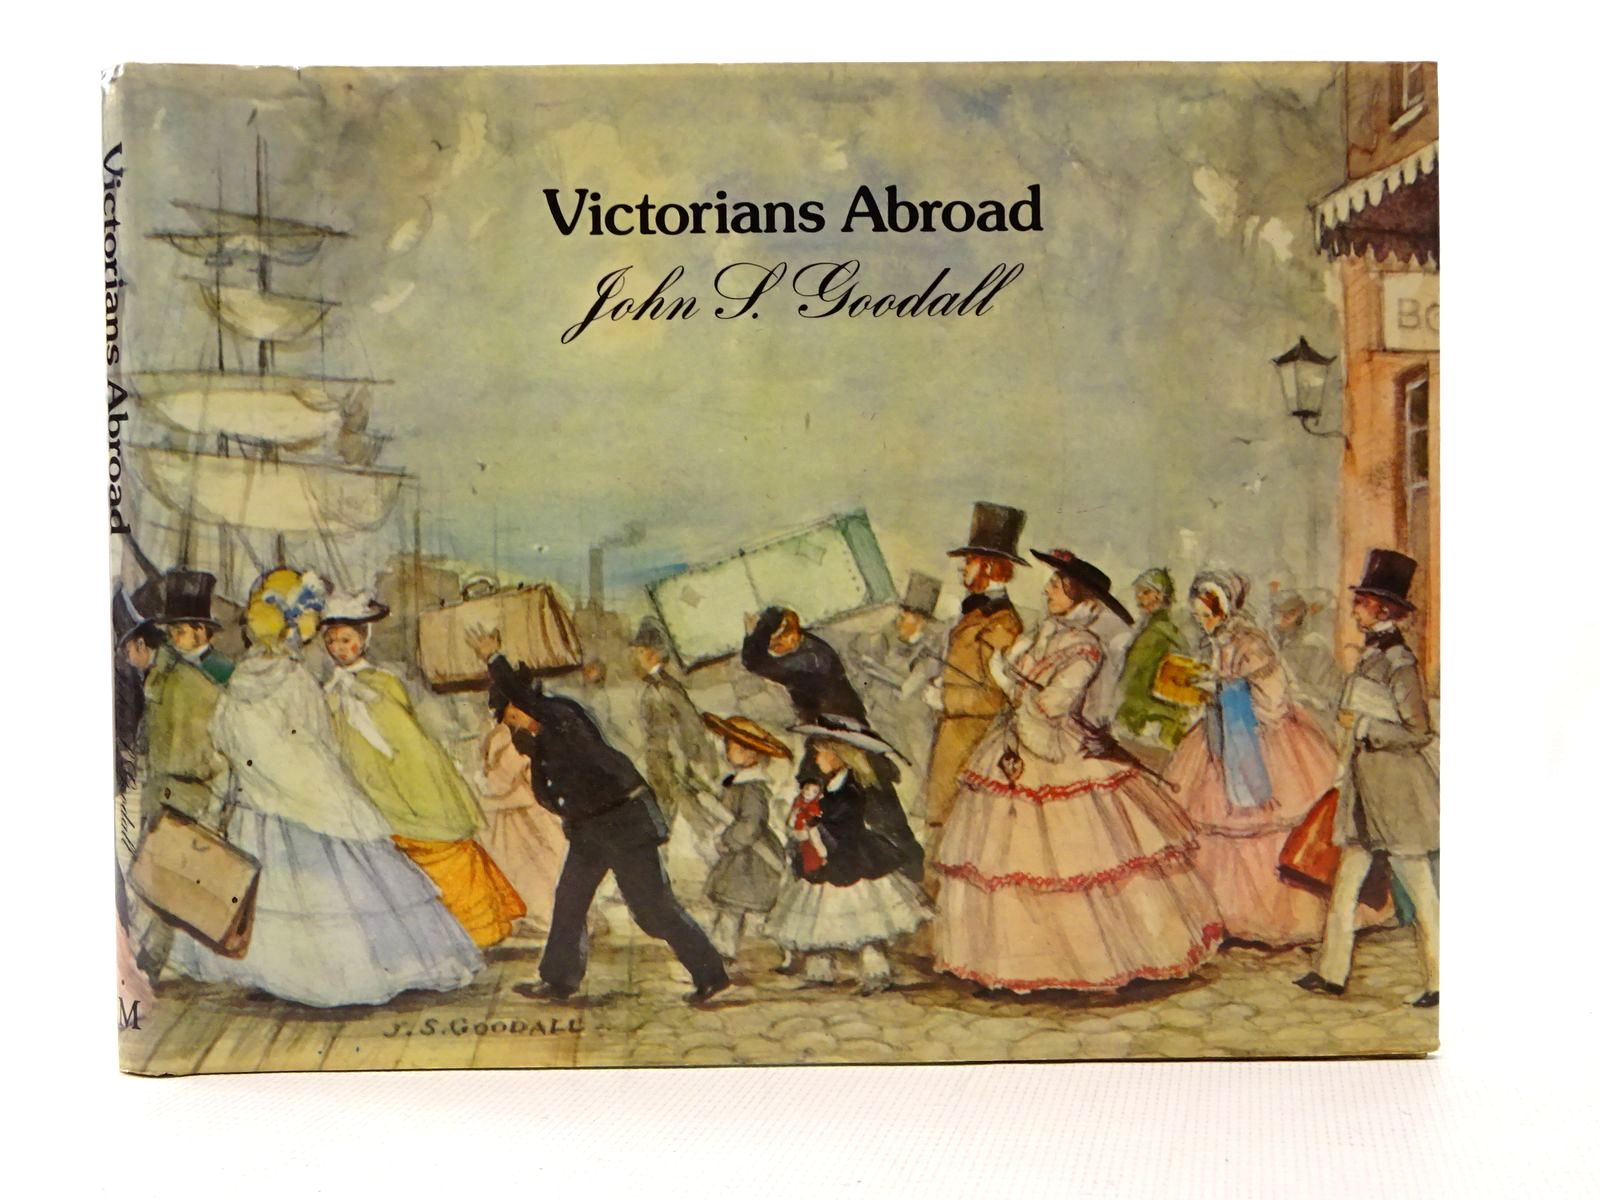 Photo of VICTORIANS ABROAD written by Goodall, John S. illustrated by Goodall, John S. published by Macmillan London Limited (STOCK CODE: 1815767)  for sale by Stella & Rose's Books